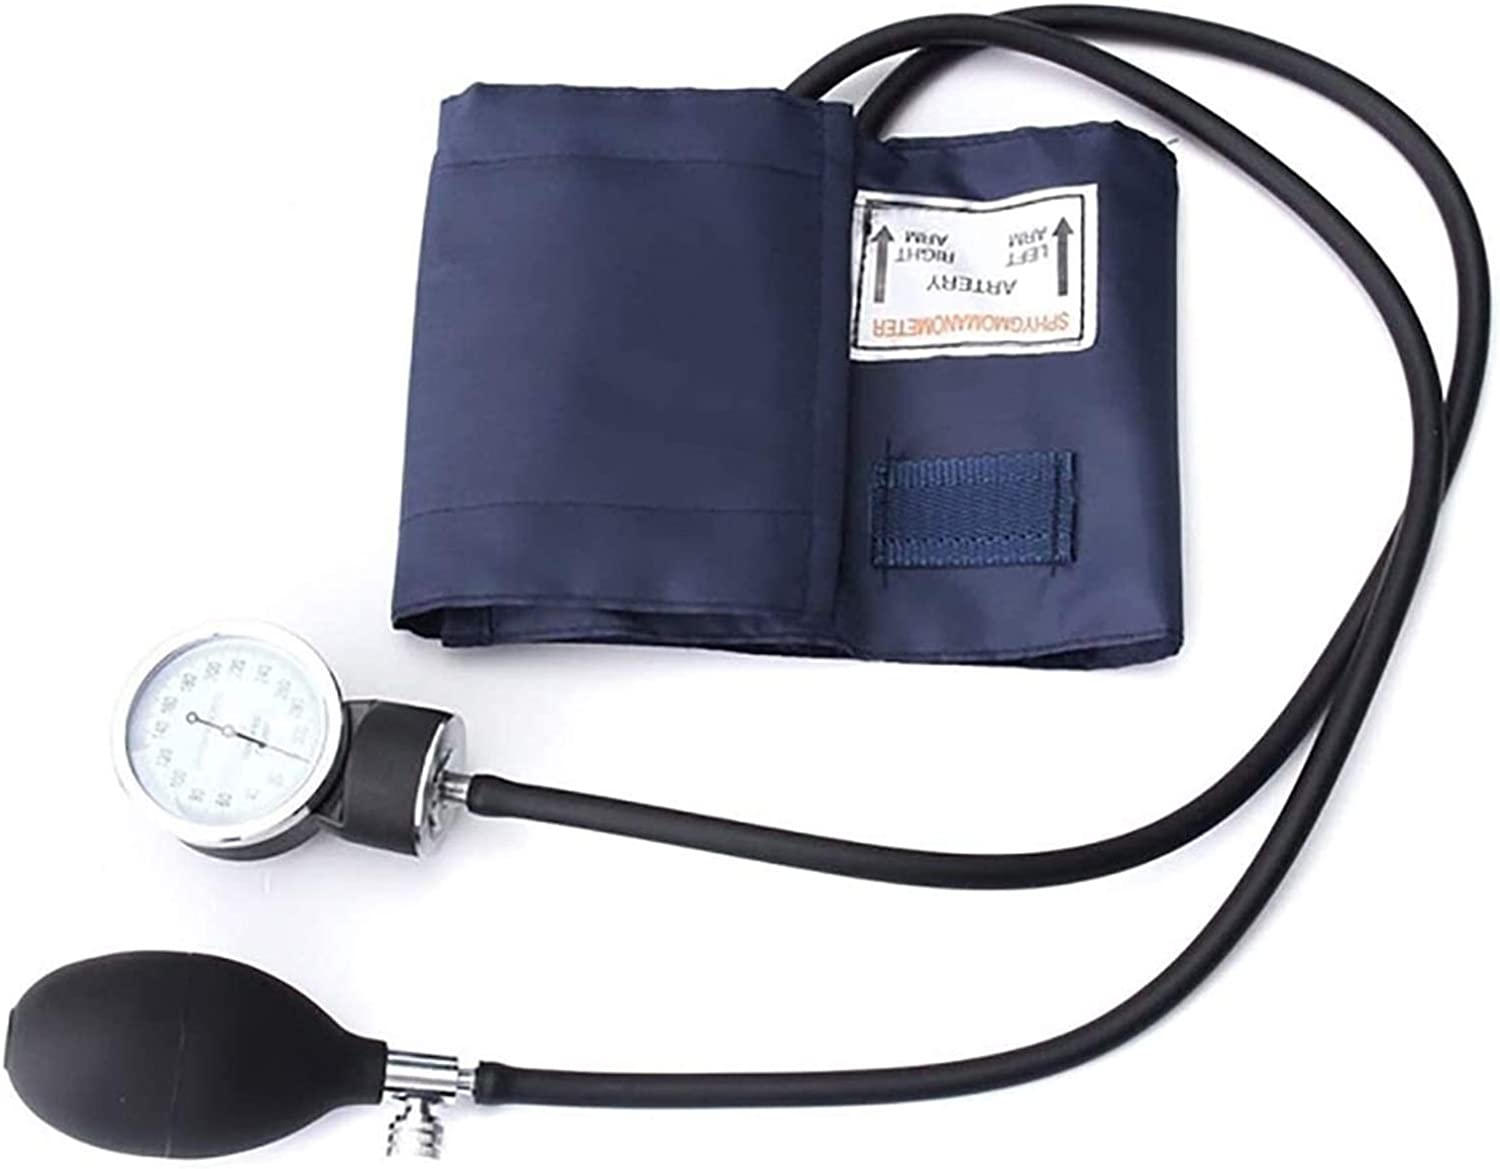 LXYYY Stethoscope San Francisco Mall Aneroid Cuff Manufacturer direct delivery Sphygmomanometer Prof